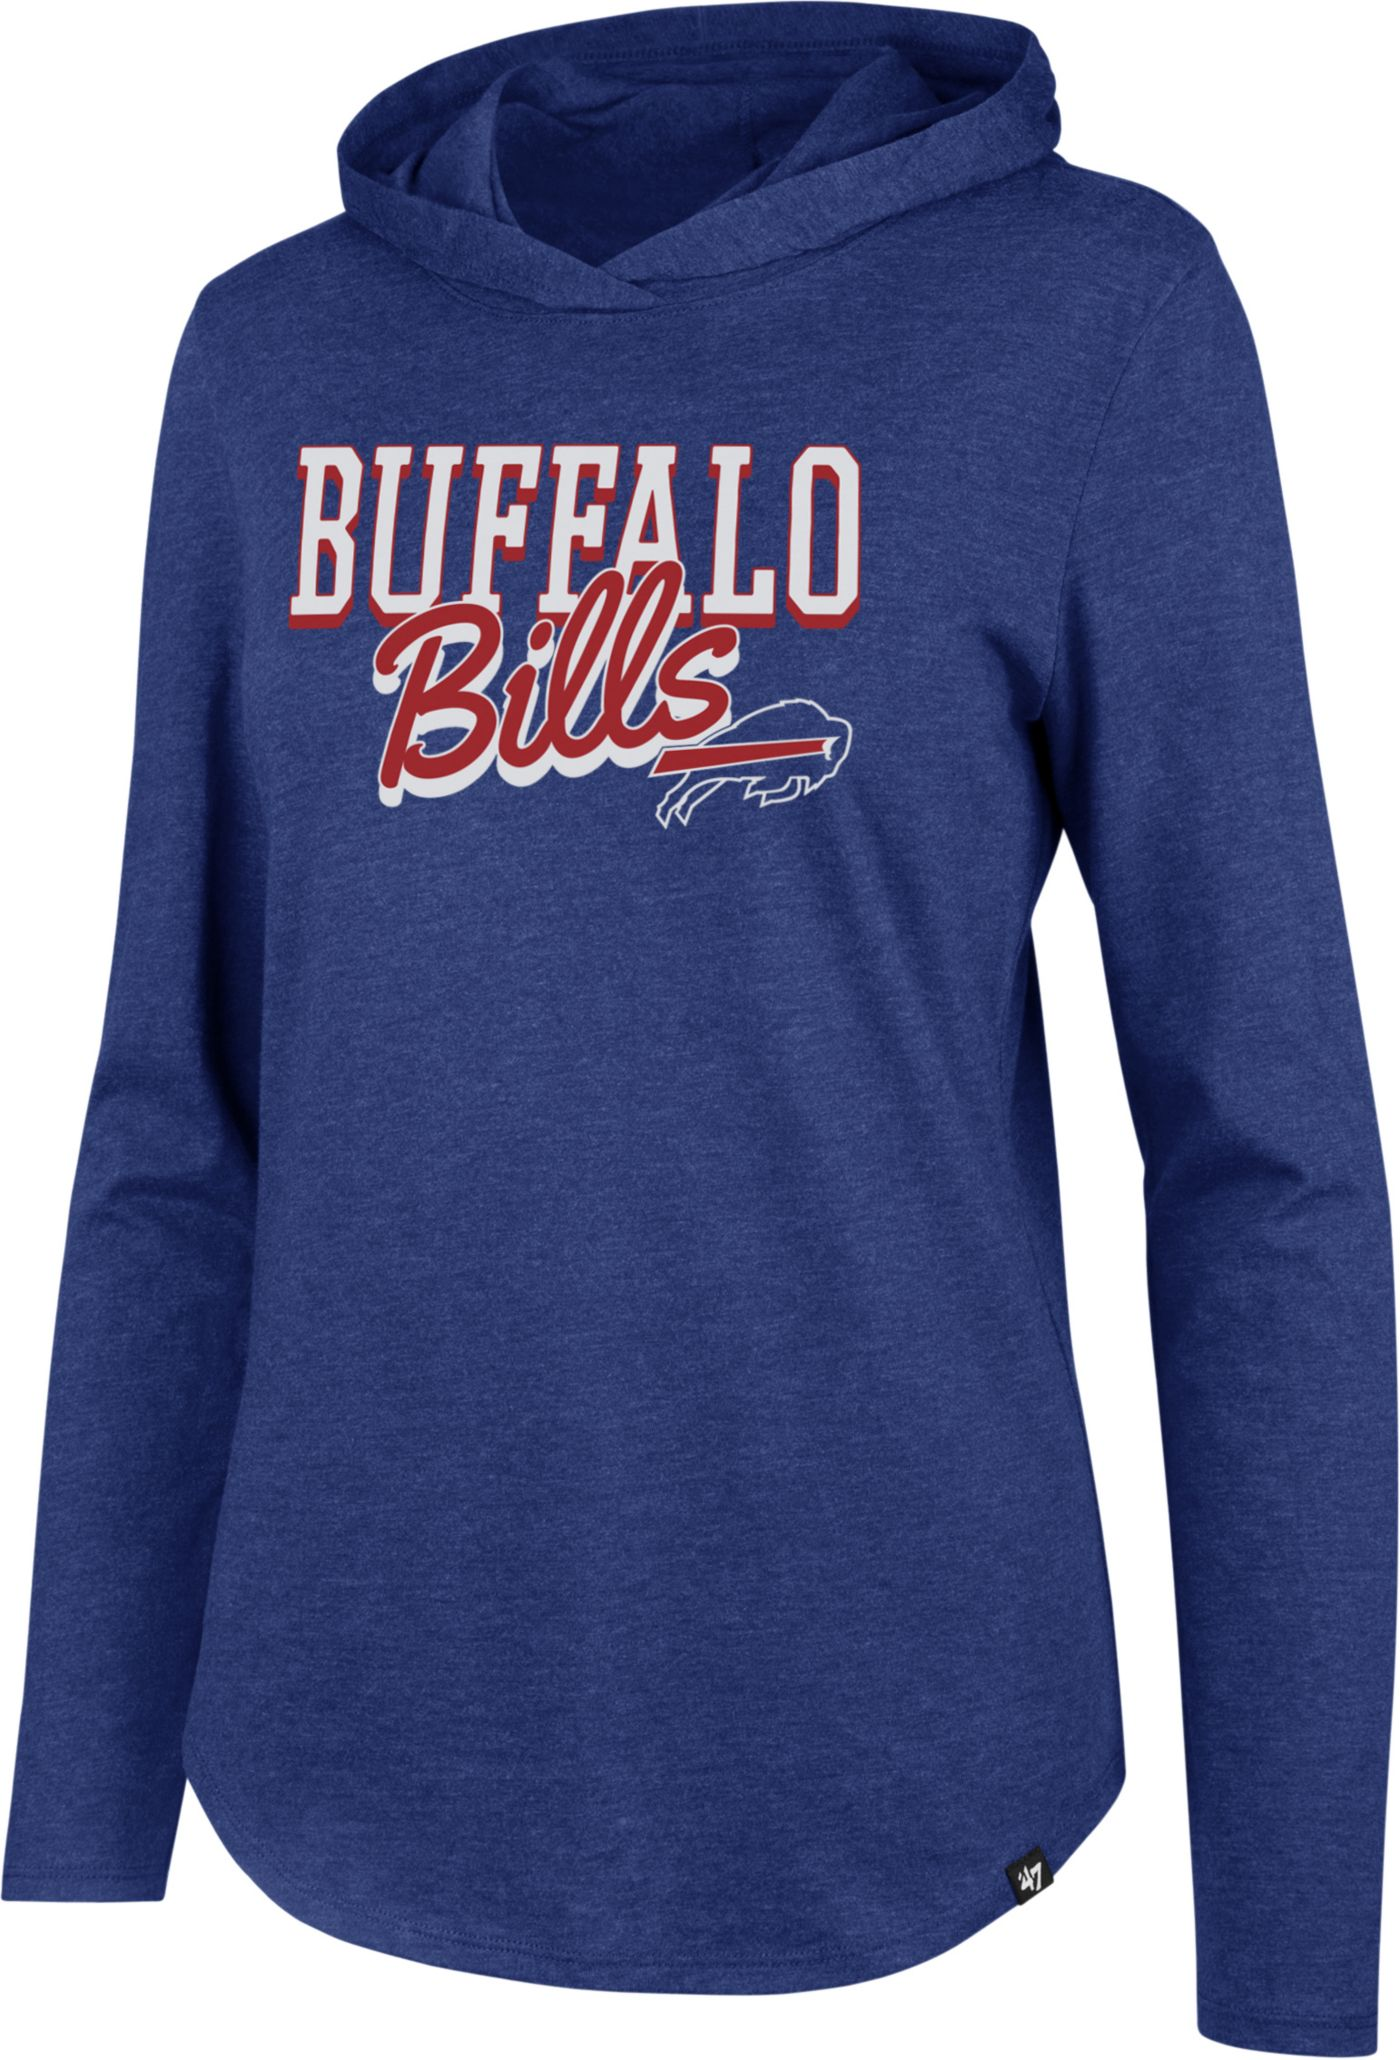 '47 Women's Buffalo Bills Club Royal Hooded Long Sleeve Shirt